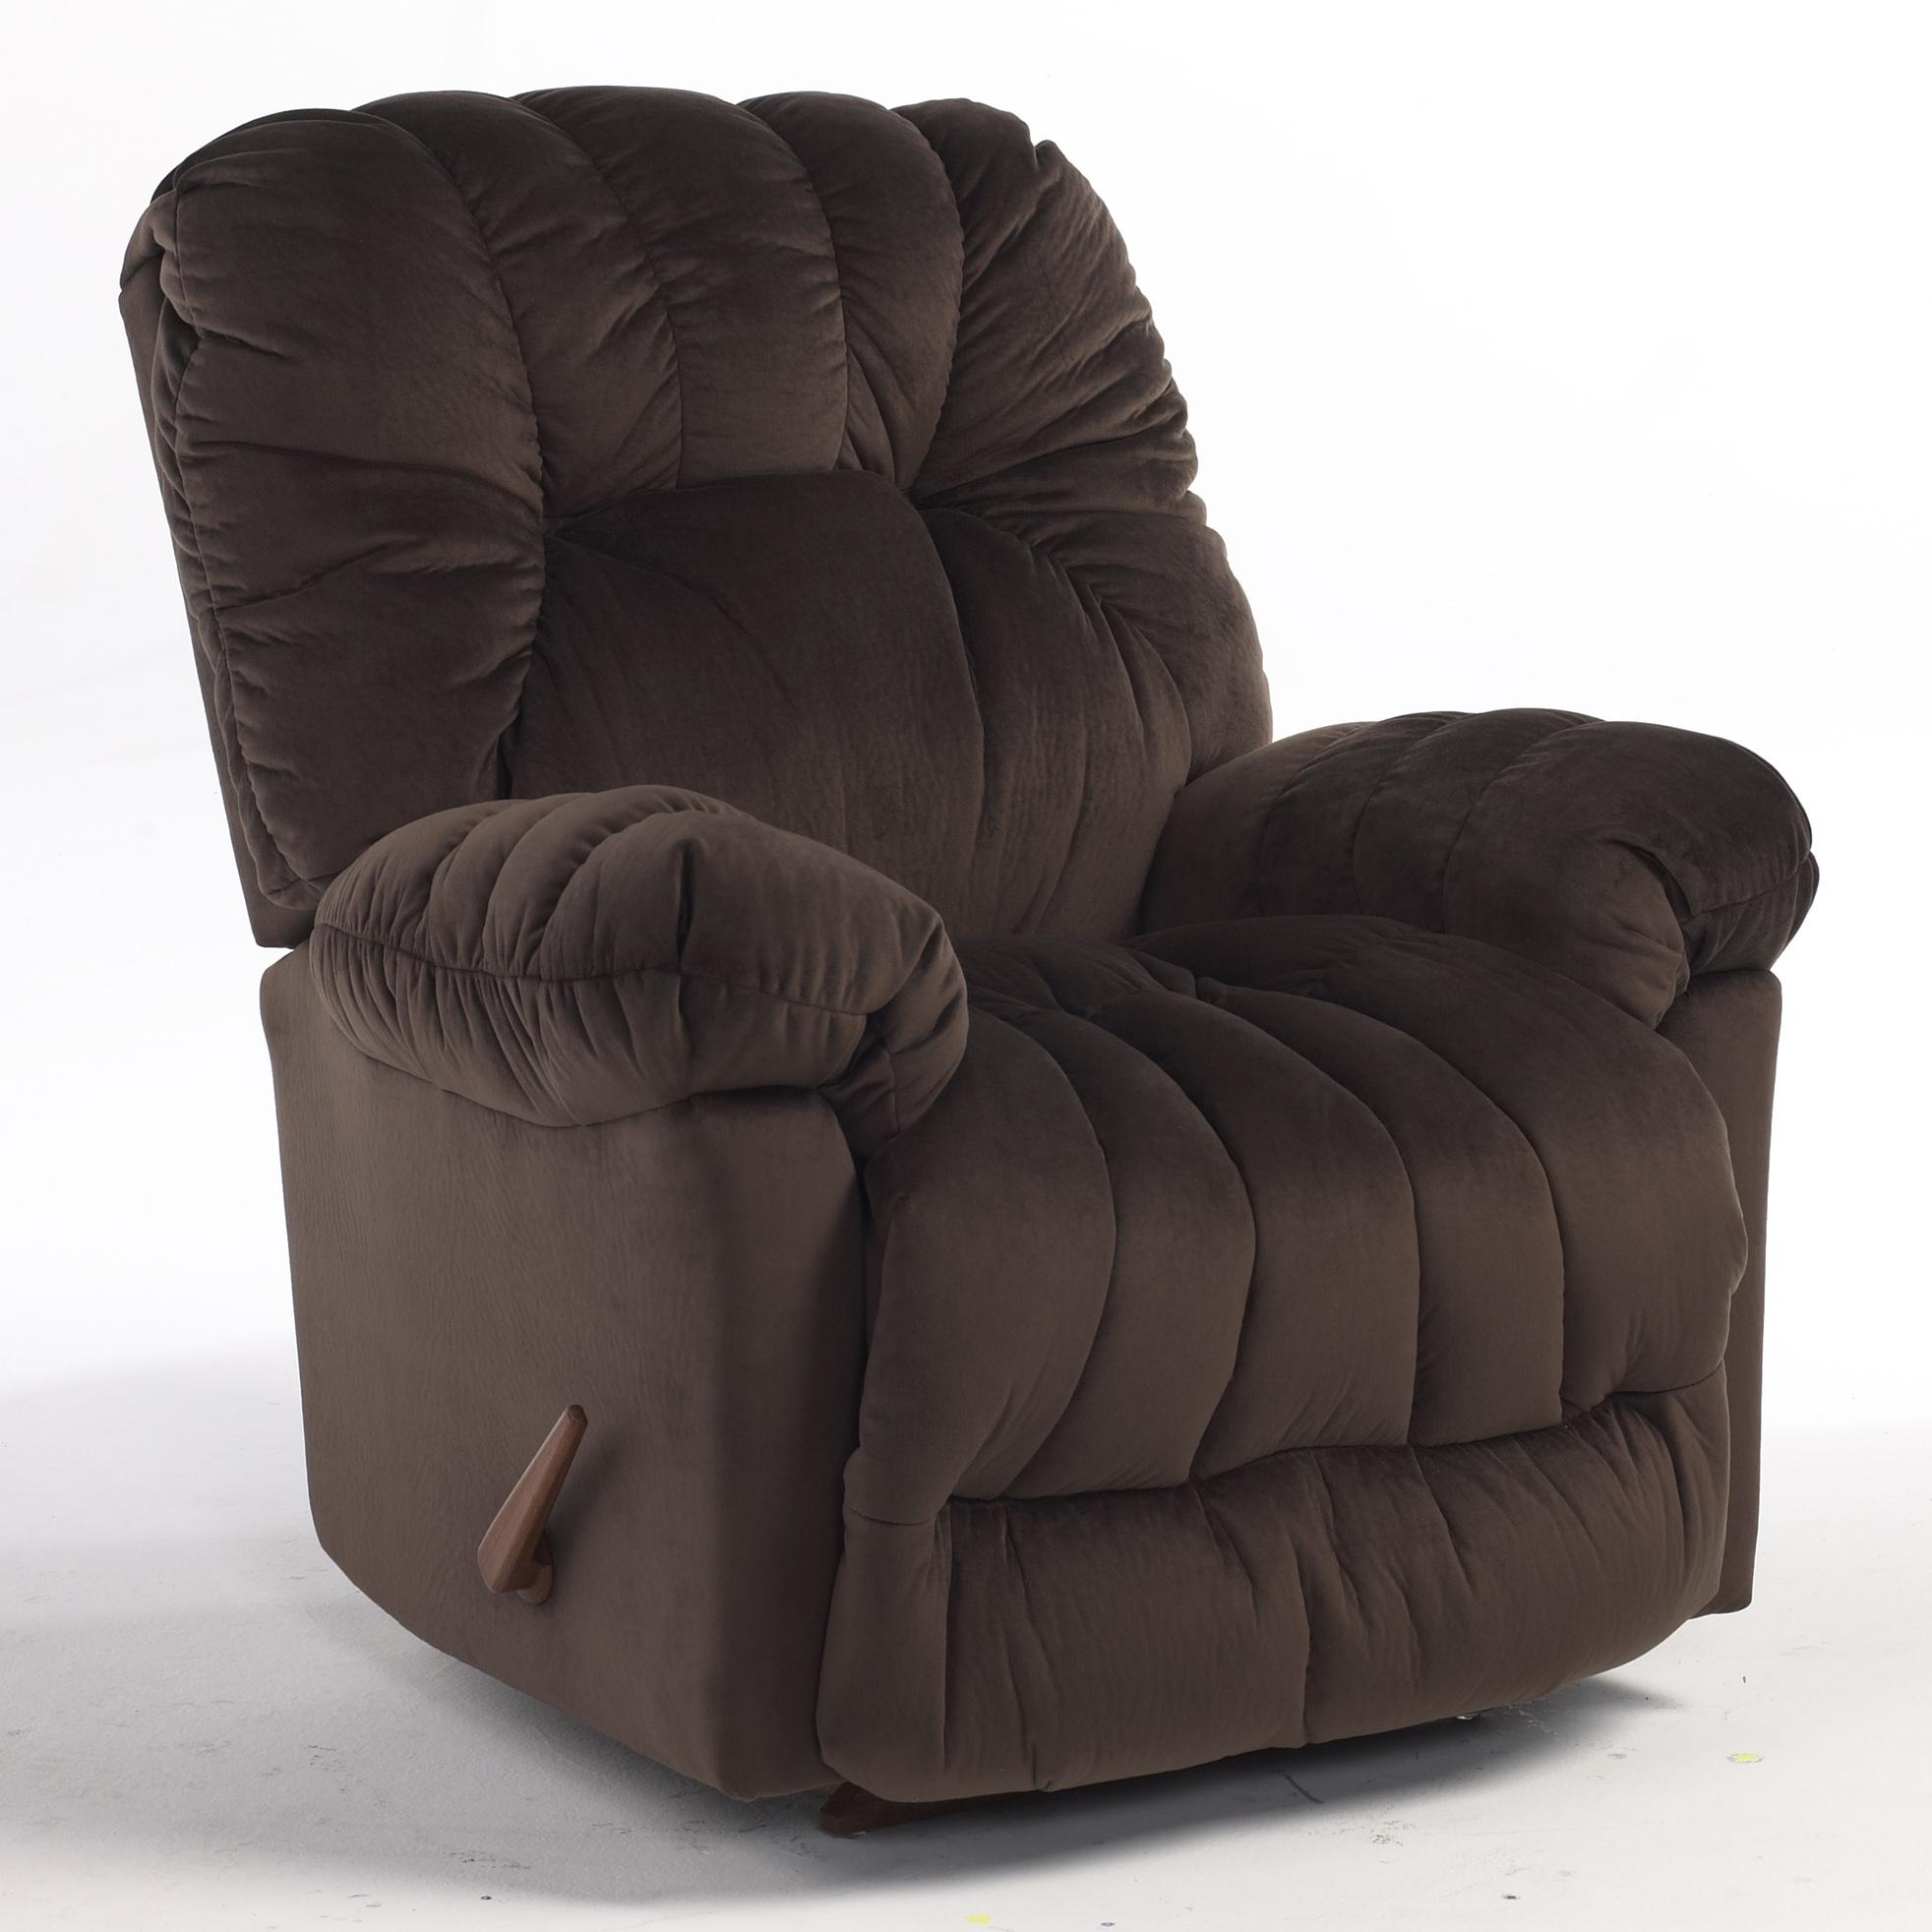 rocking recliner chairs pyramat gaming chair best home furnishings recliners medium conen swivel